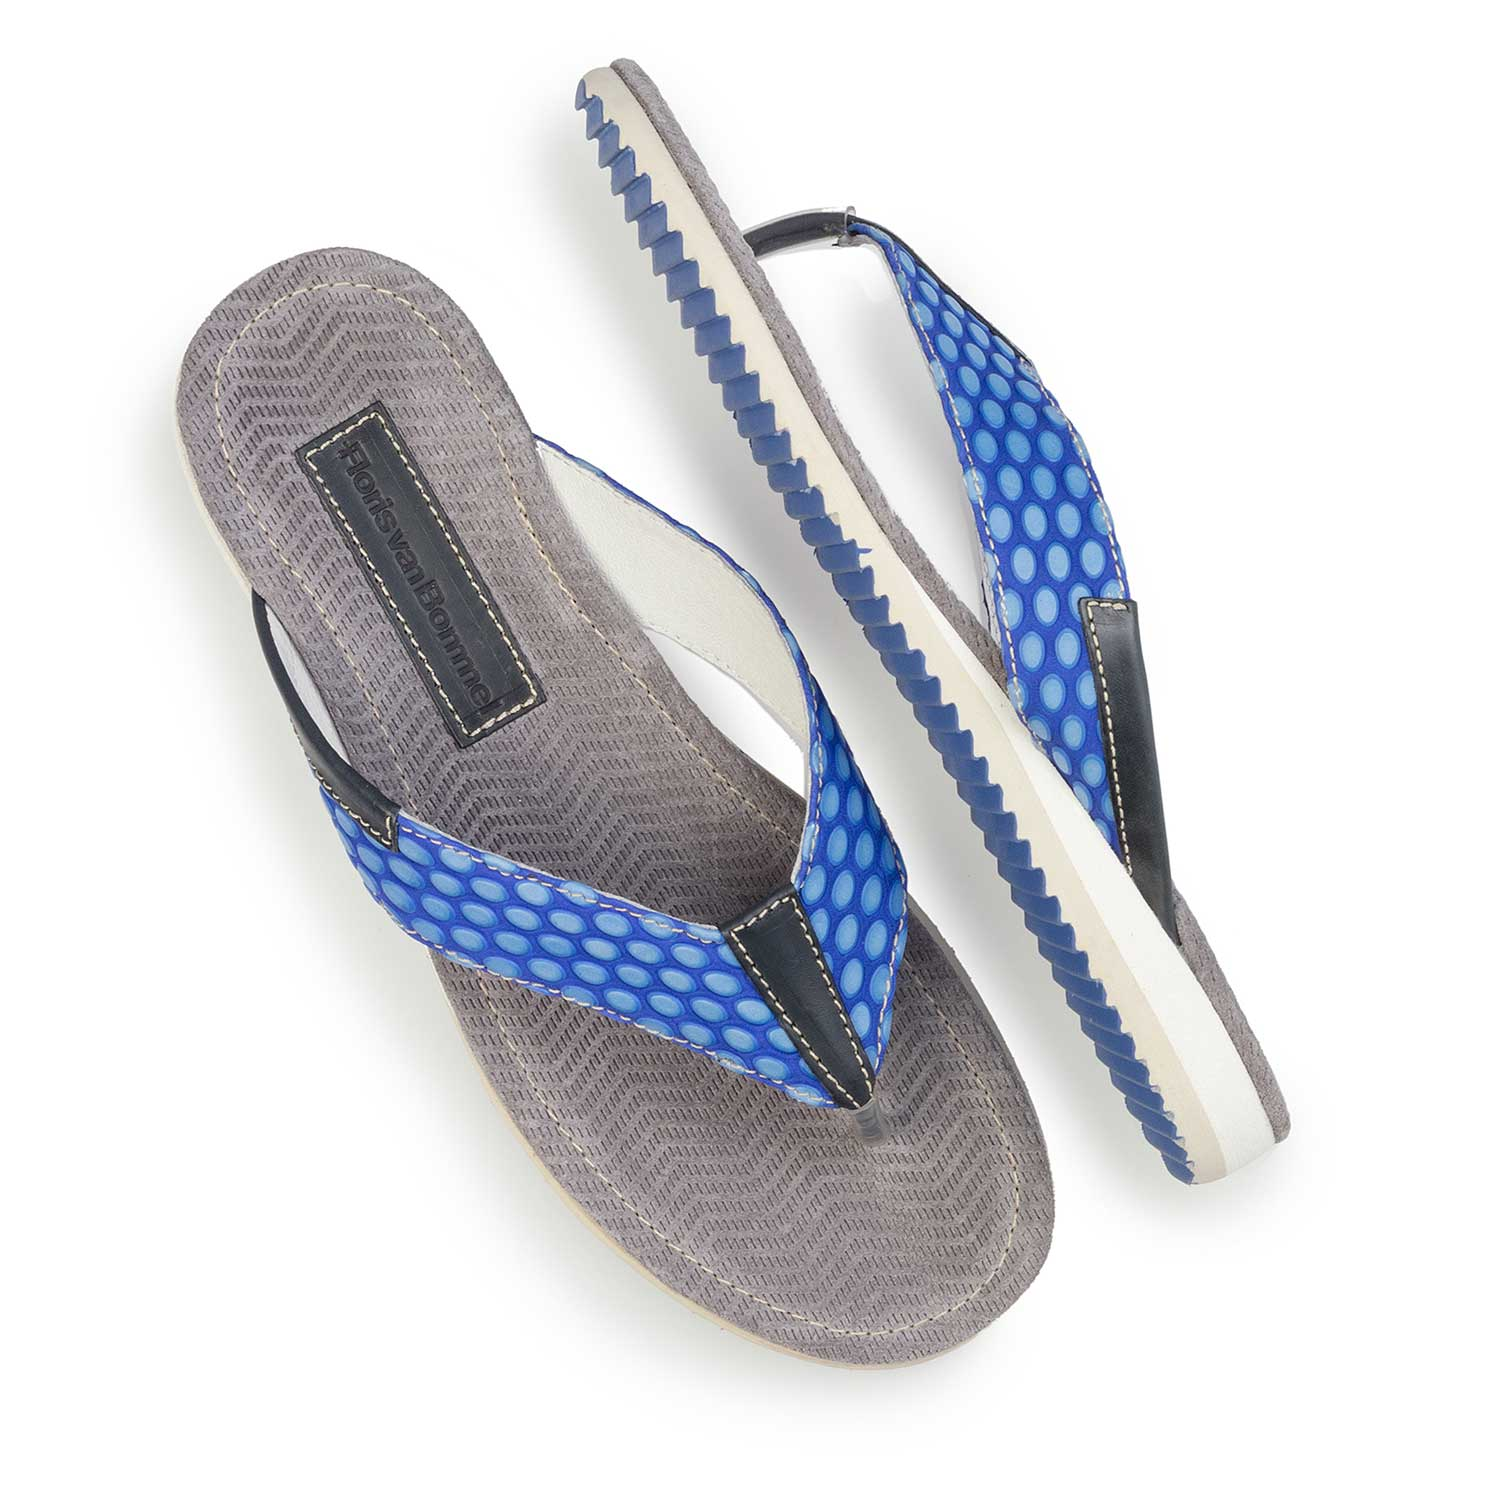 20022/22 - Cobalt clue, printed leather thong slipper